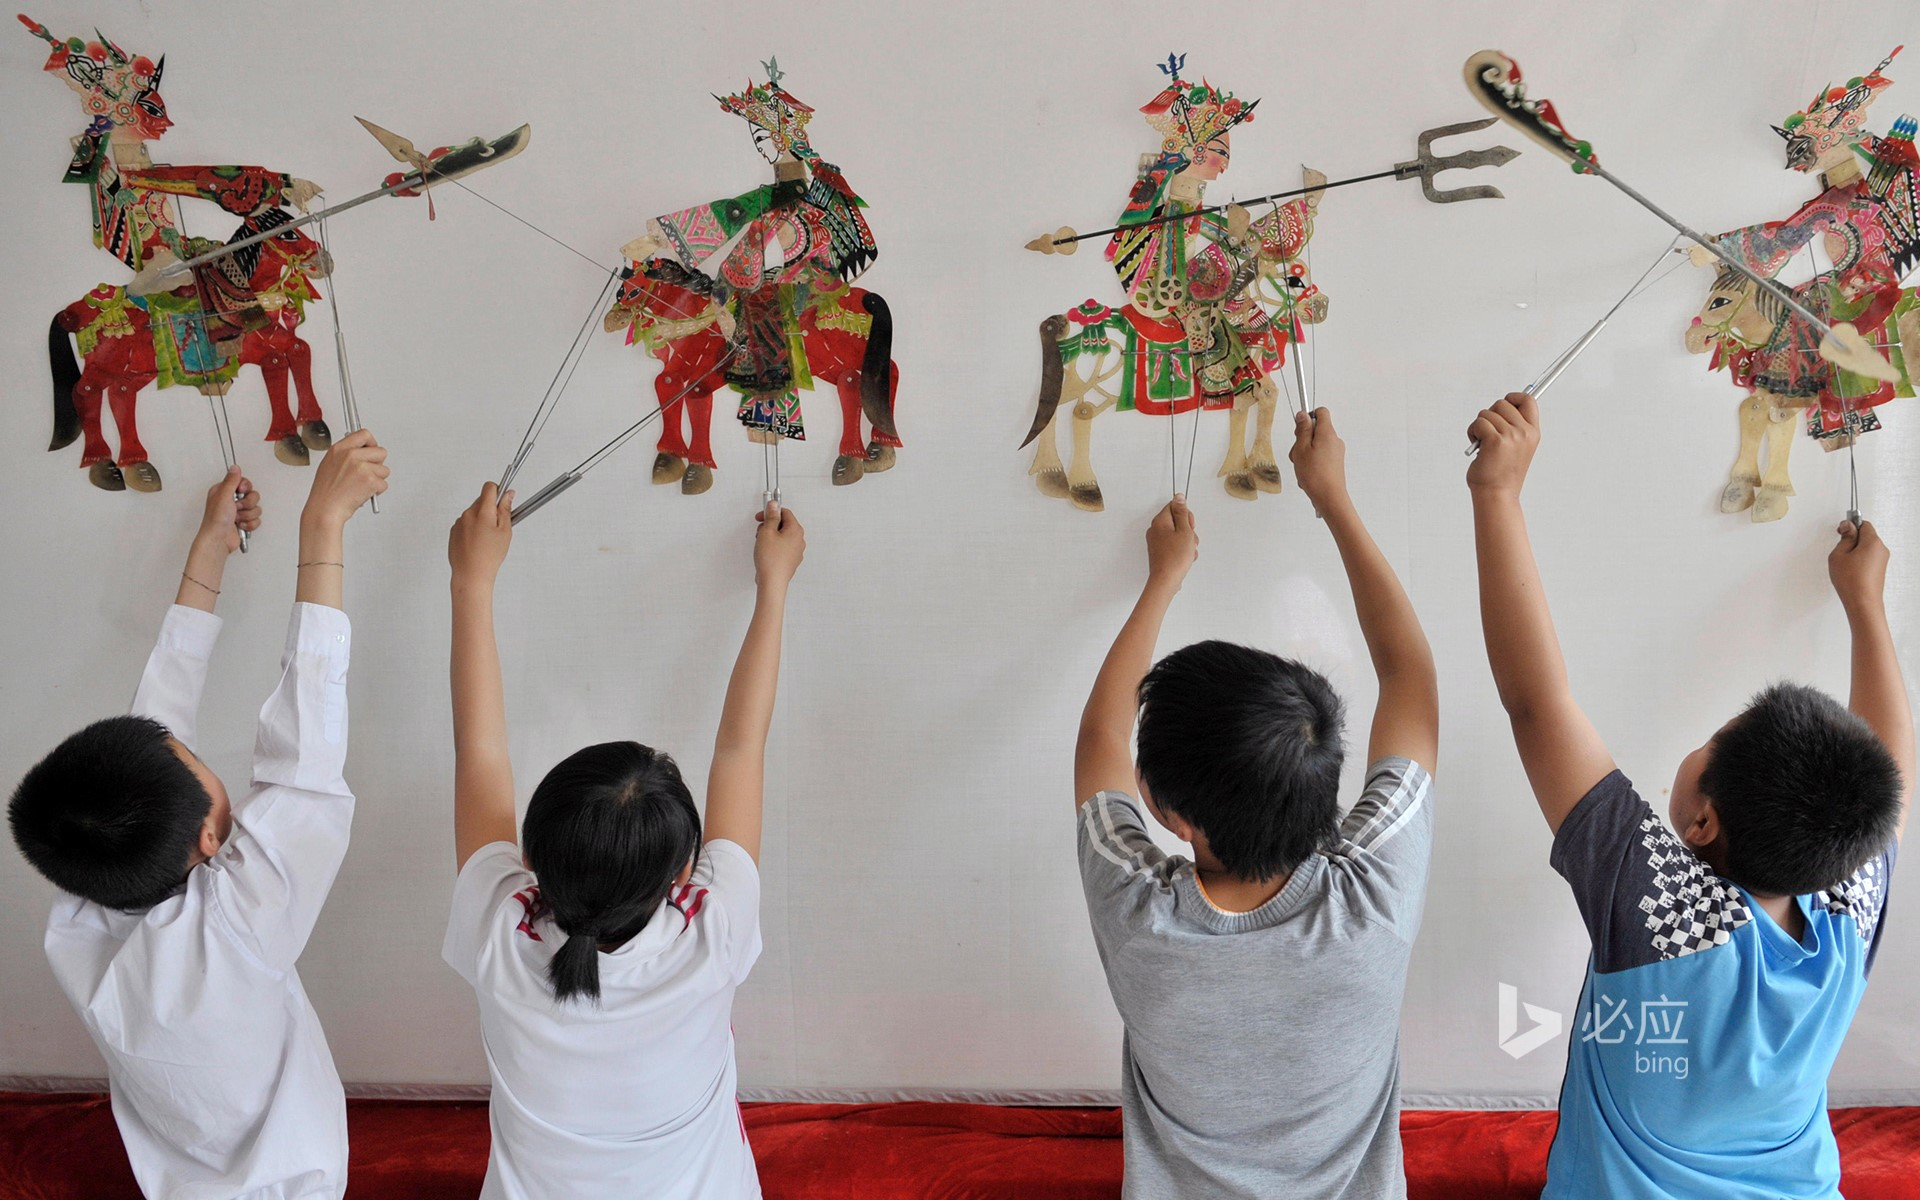 [Six Children's Day] Puyang Elementary School students rehearse shadow play in Shenyang, China